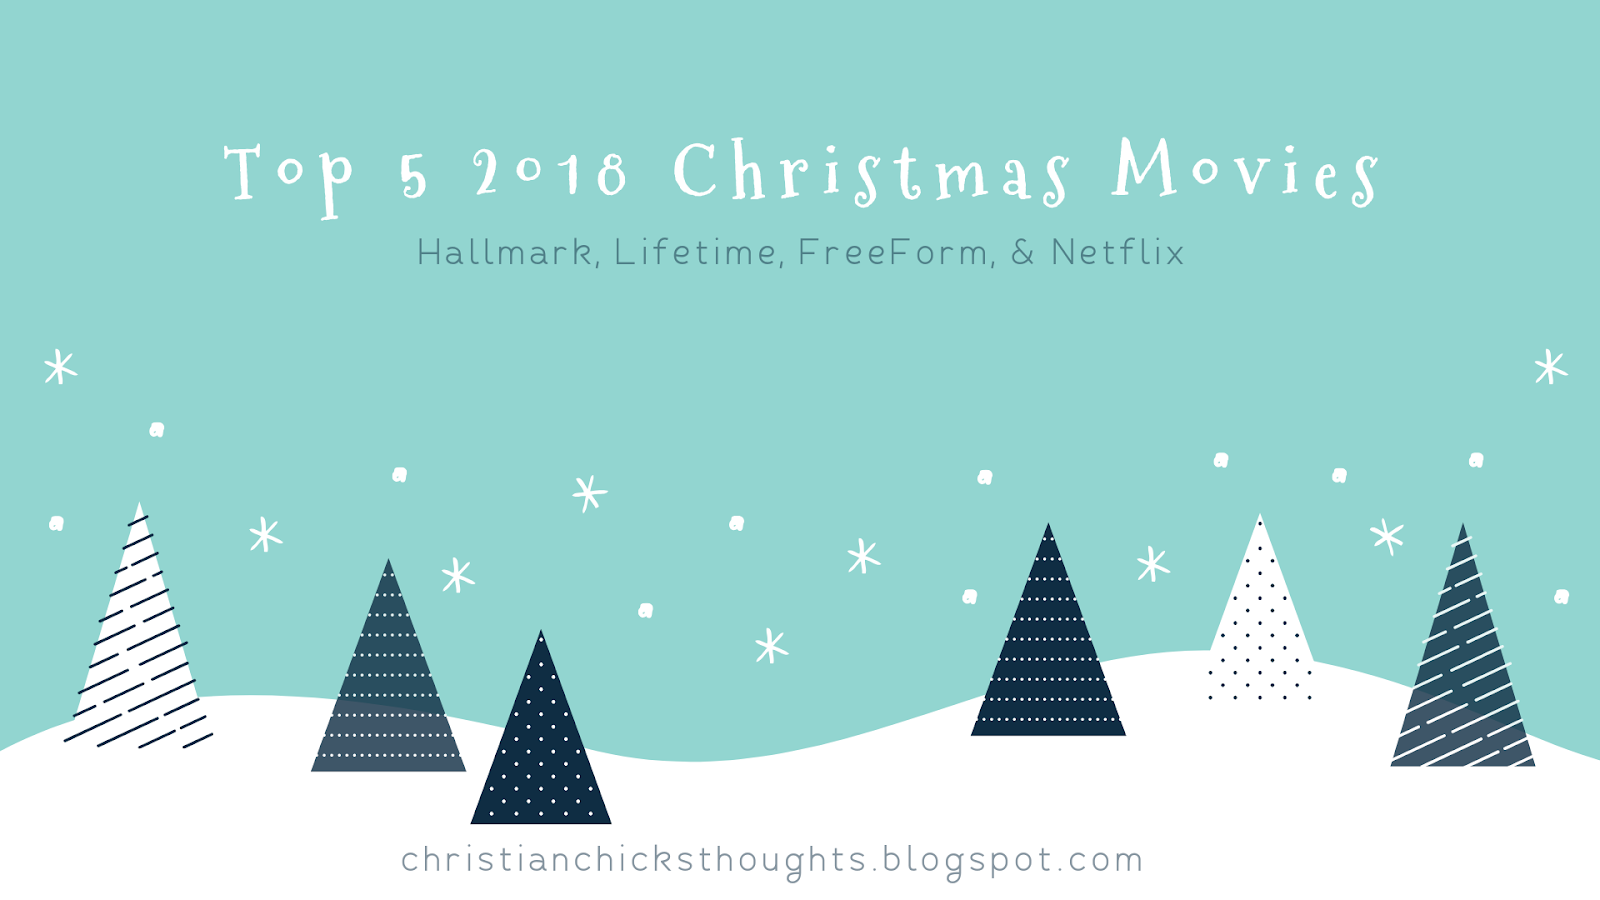 Christian Chick's Thoughts: Top 5 Christmas Movies of 2018